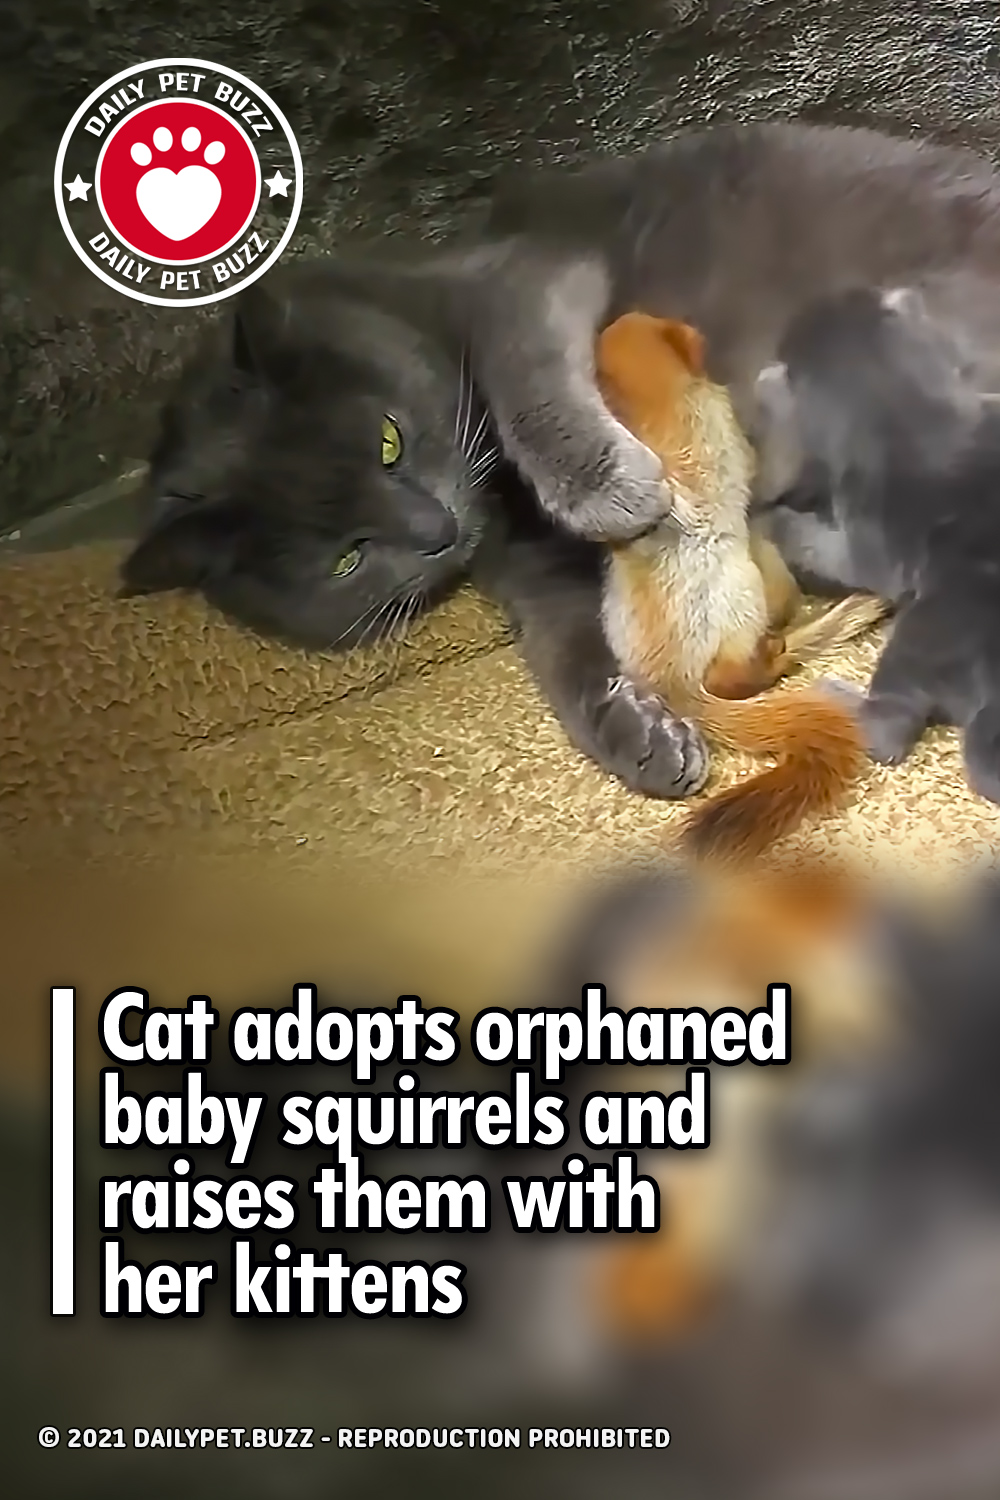 Cat adopts orphaned baby squirrels and raises them with her kittens